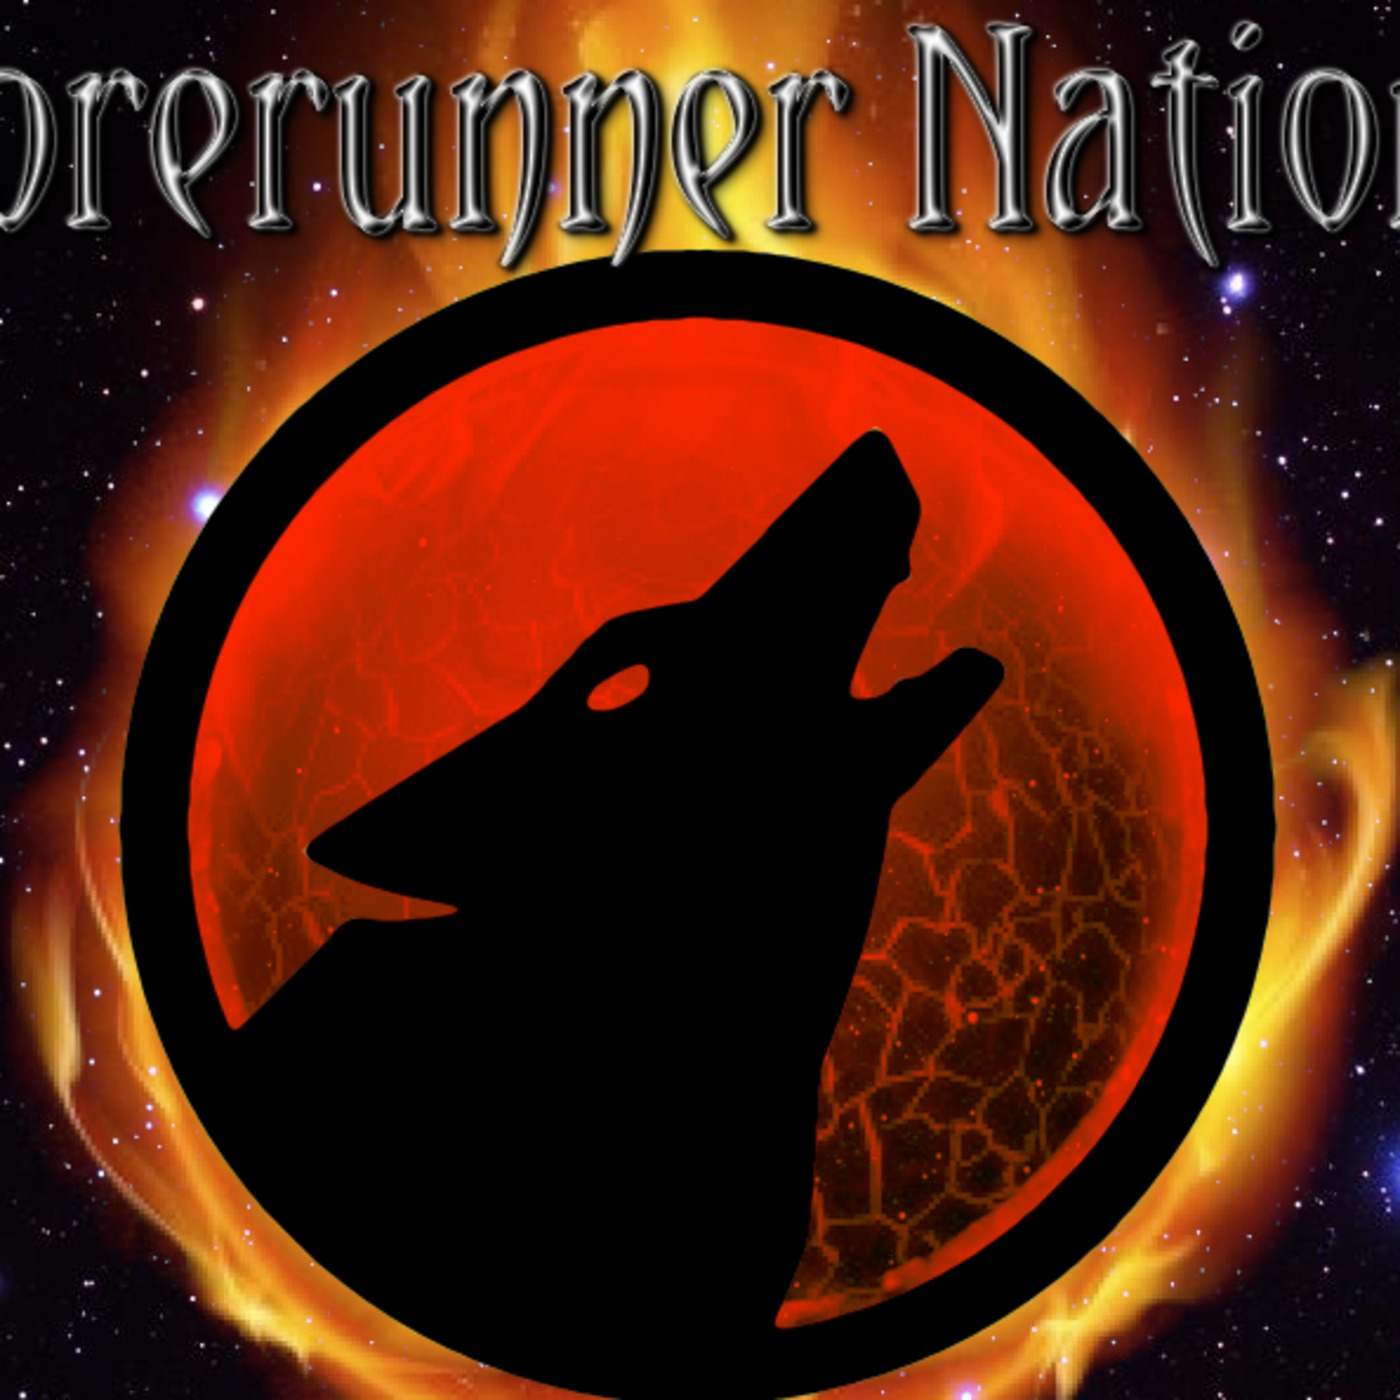 Forerunner Nation Podcast